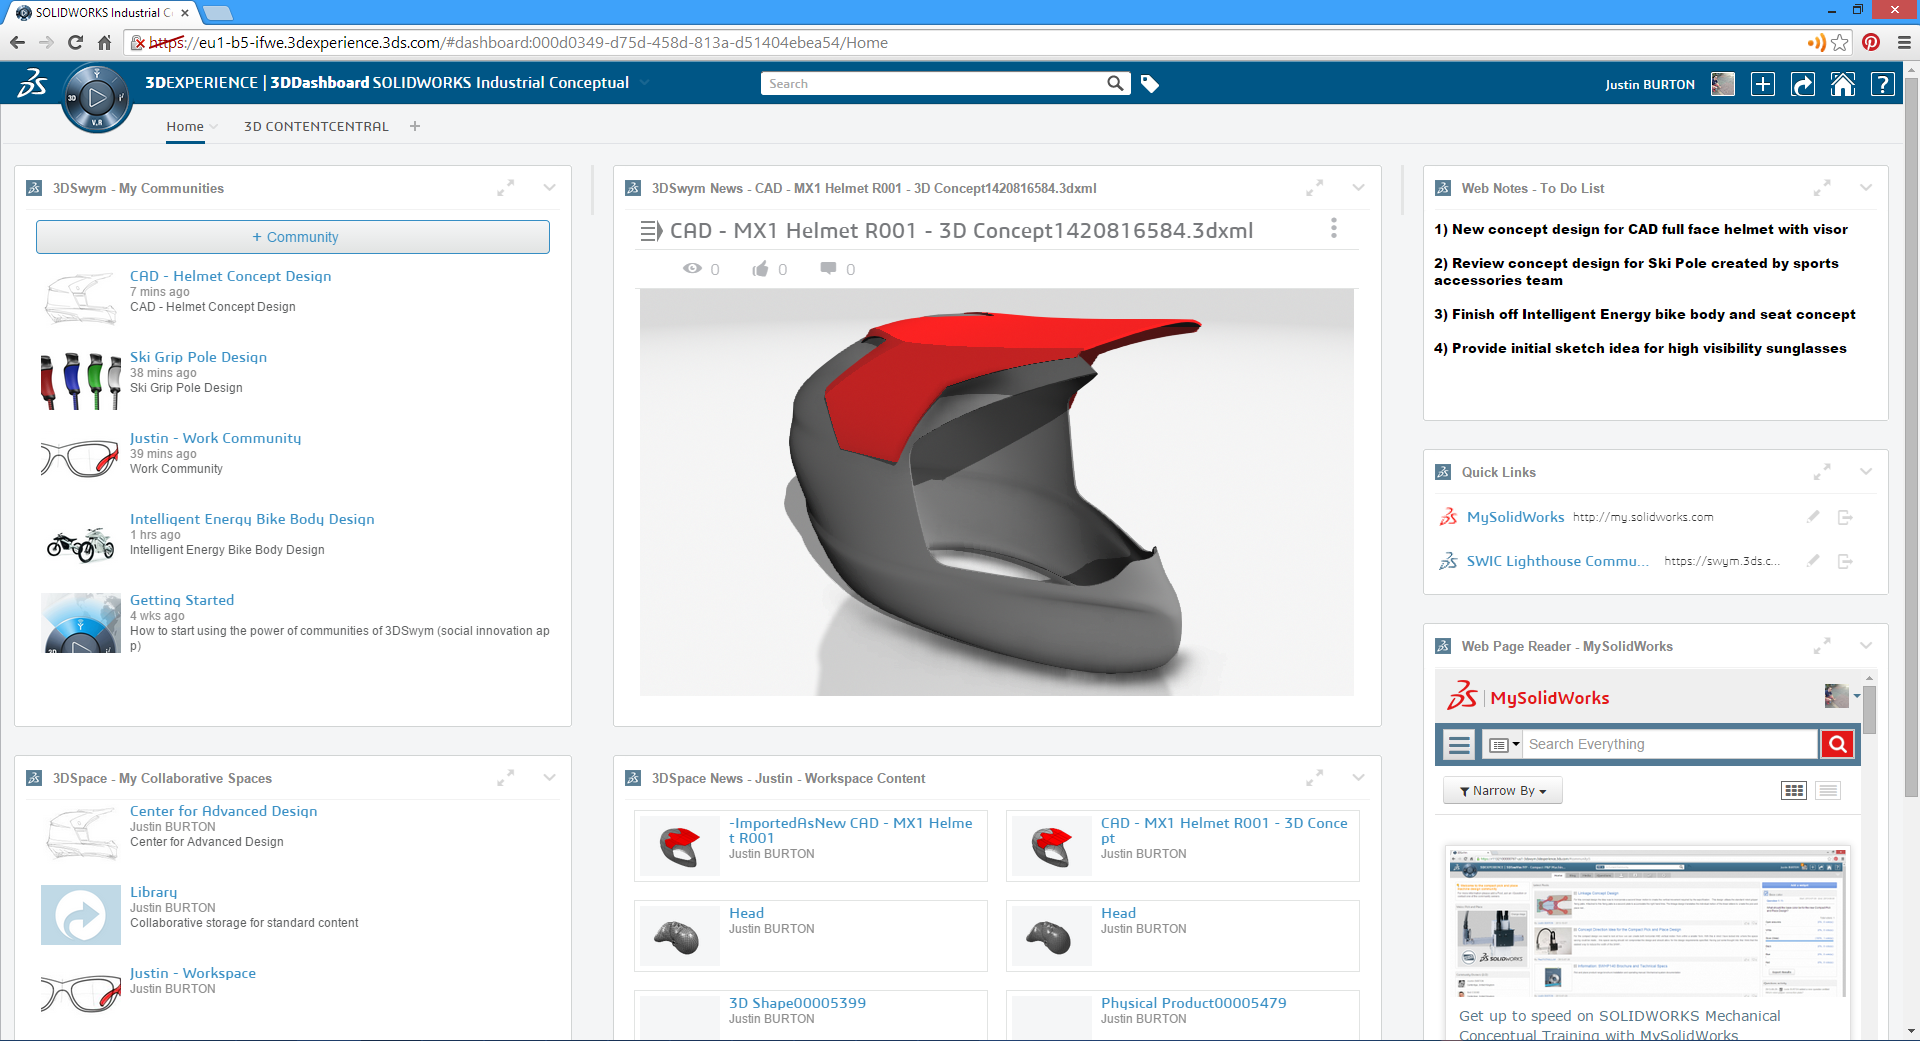 Accelerating Industrial Design Concept Development with SOLIDWORKS Industrial Designer